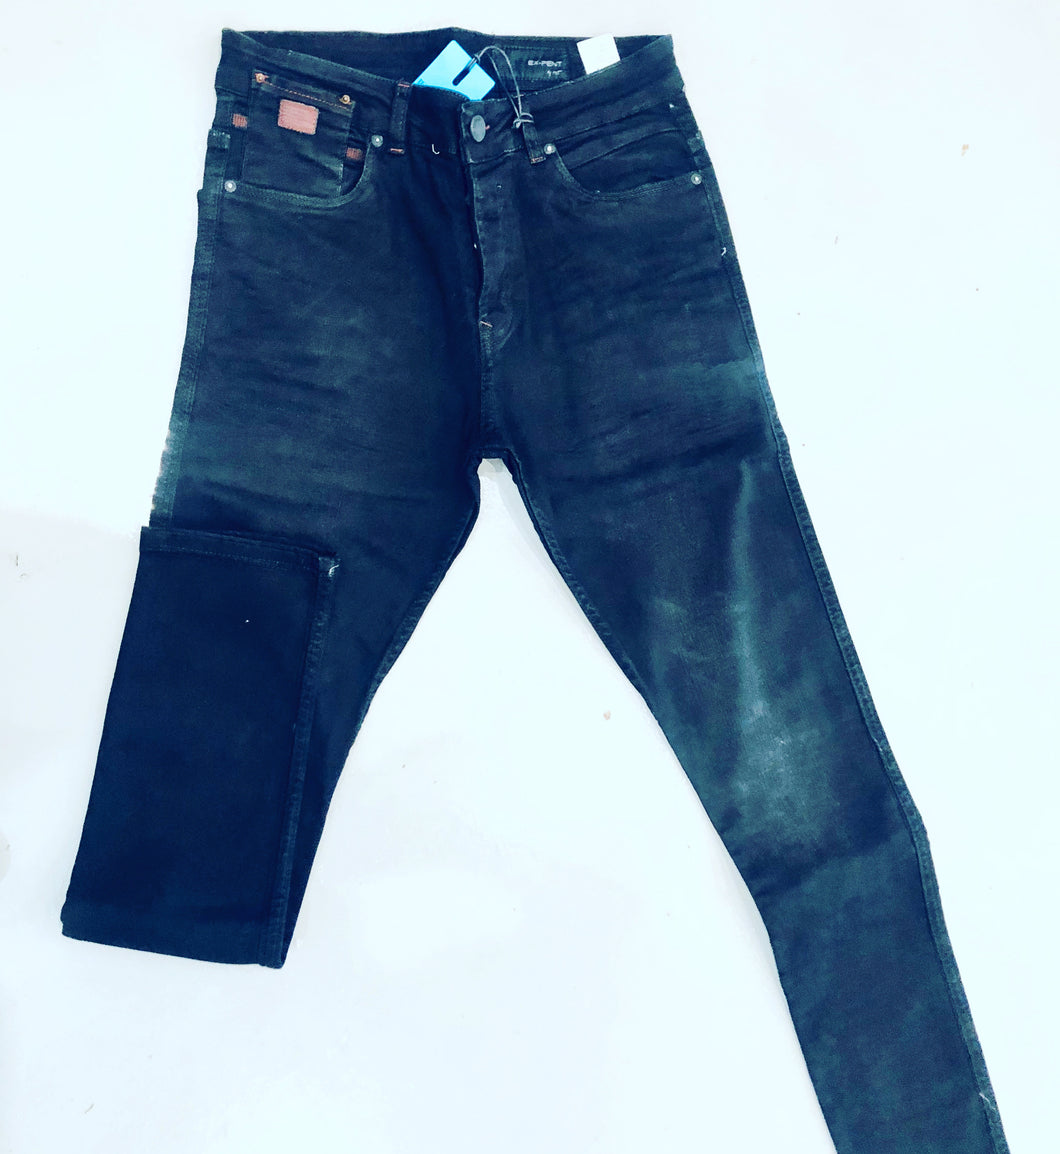 PE6716 Jeans: Charcoal